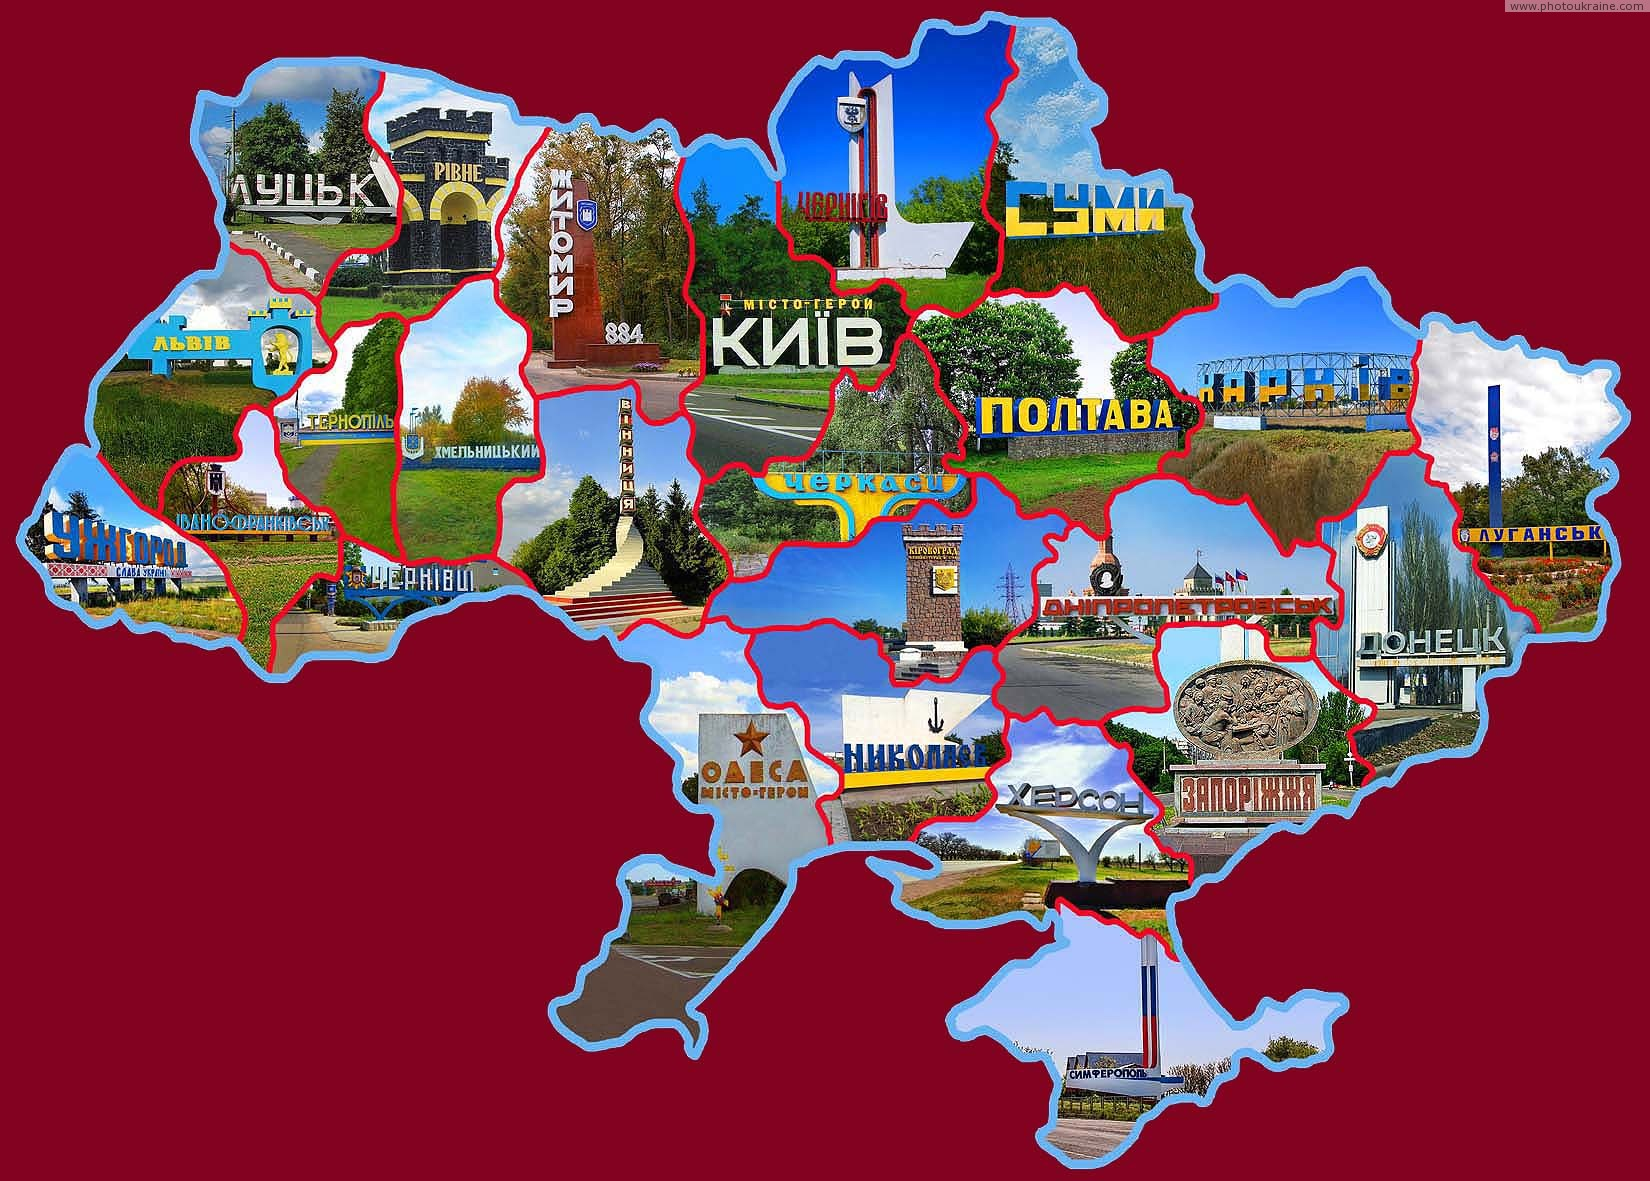 Road signs of the centers of administrative regions of Ukraine